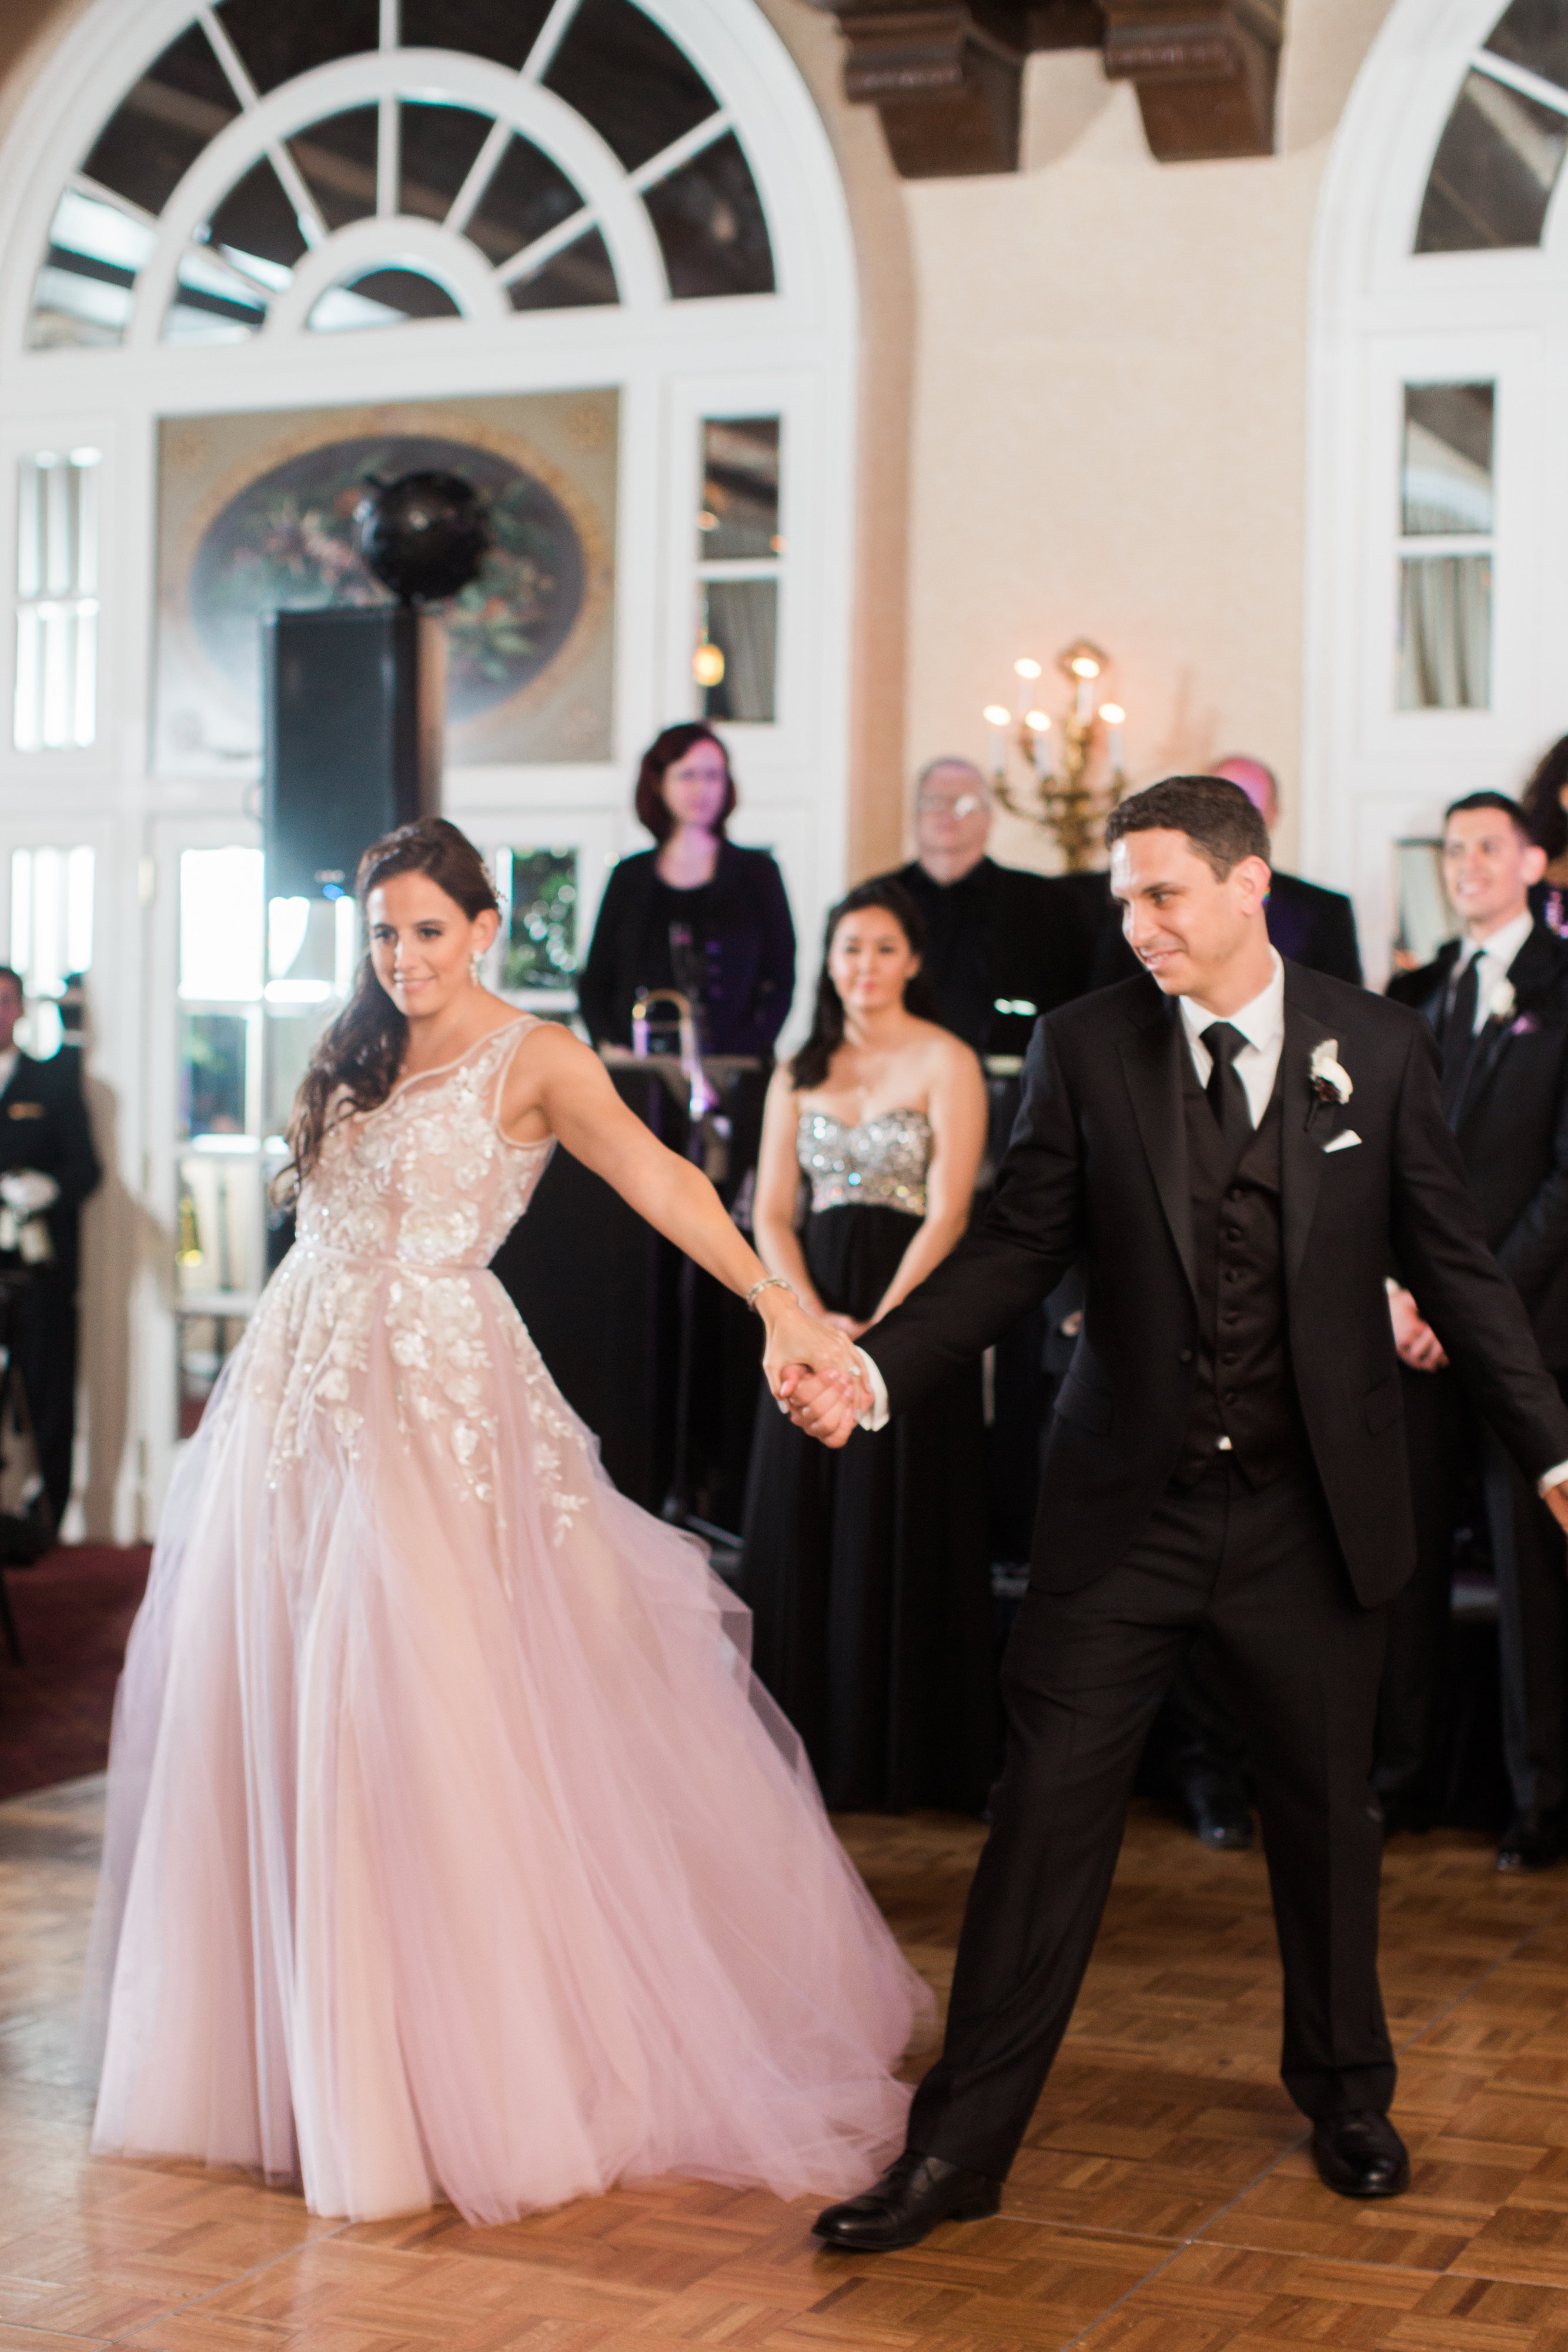 St. Regis Washington Wedding, Wedding Planning by Bright Occasions, Sarah Bradshaw Photography